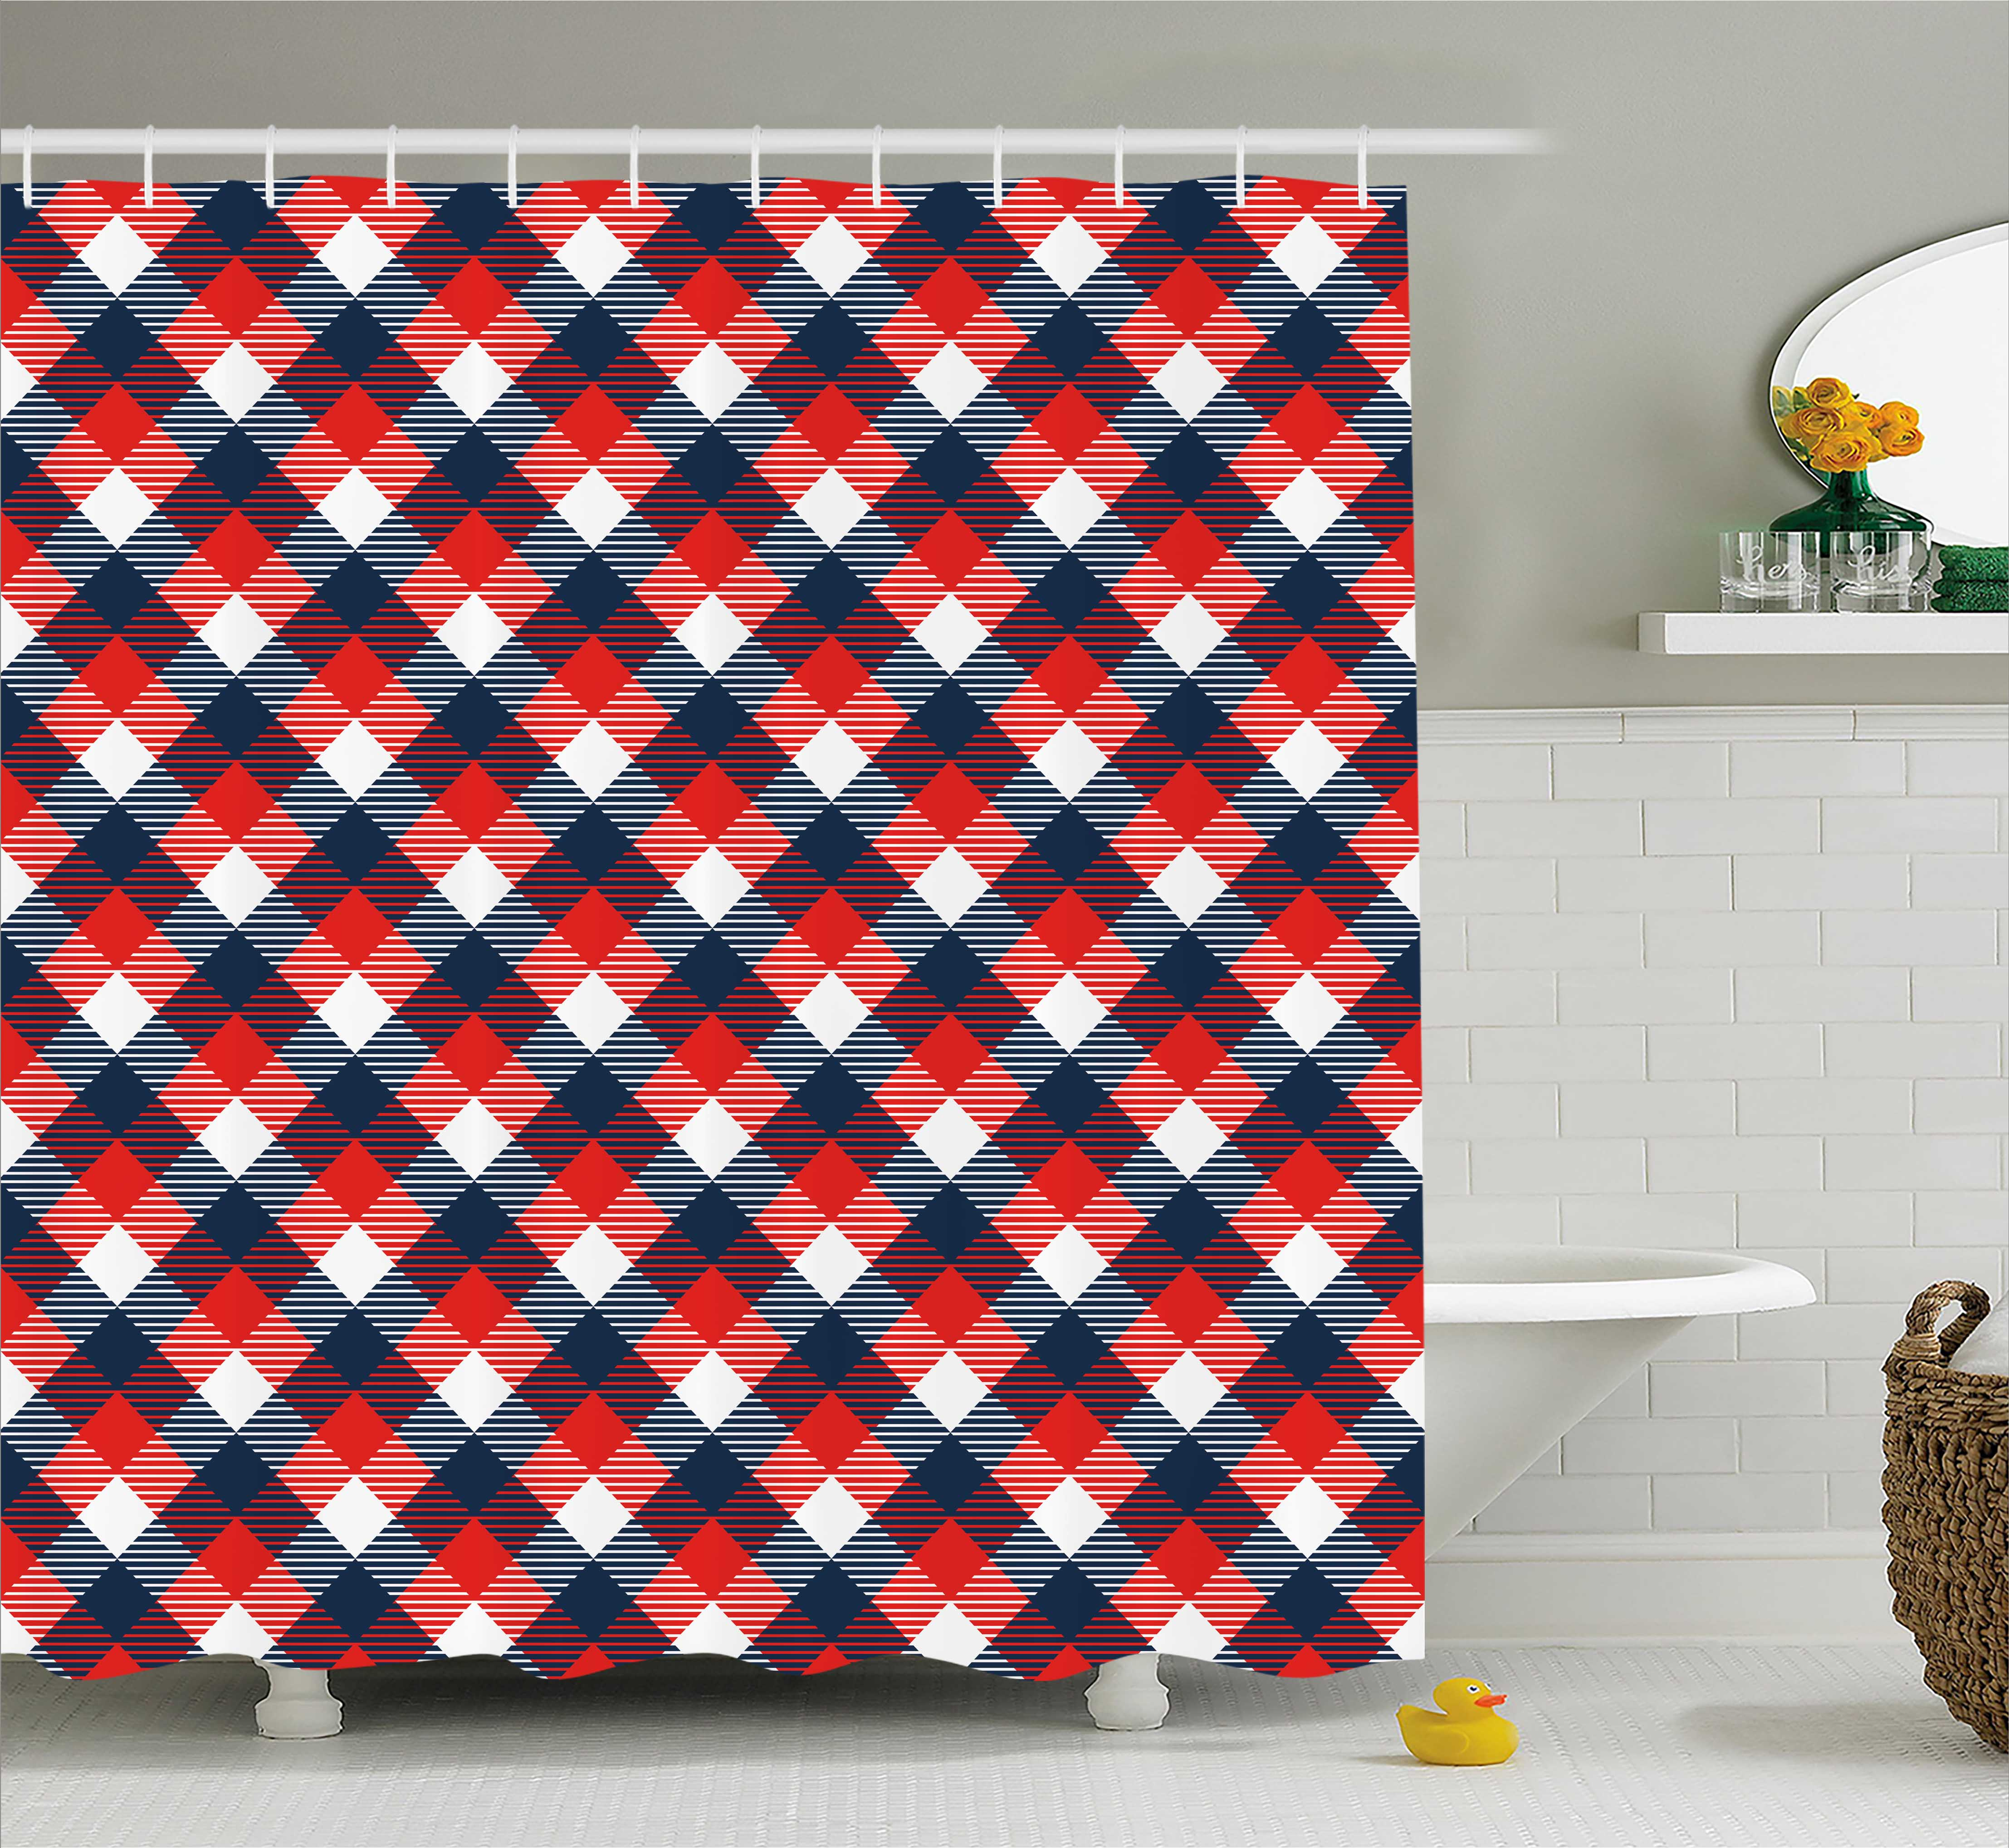 Abstract Shower Curtain, Houndstooth Pattern in Colorful Bars Royal British Clan Style Design, Fabric Bathroom Set with Hooks, 69W X 84L Inches Extra Long, Dark Blue Red White, by Ambesonne